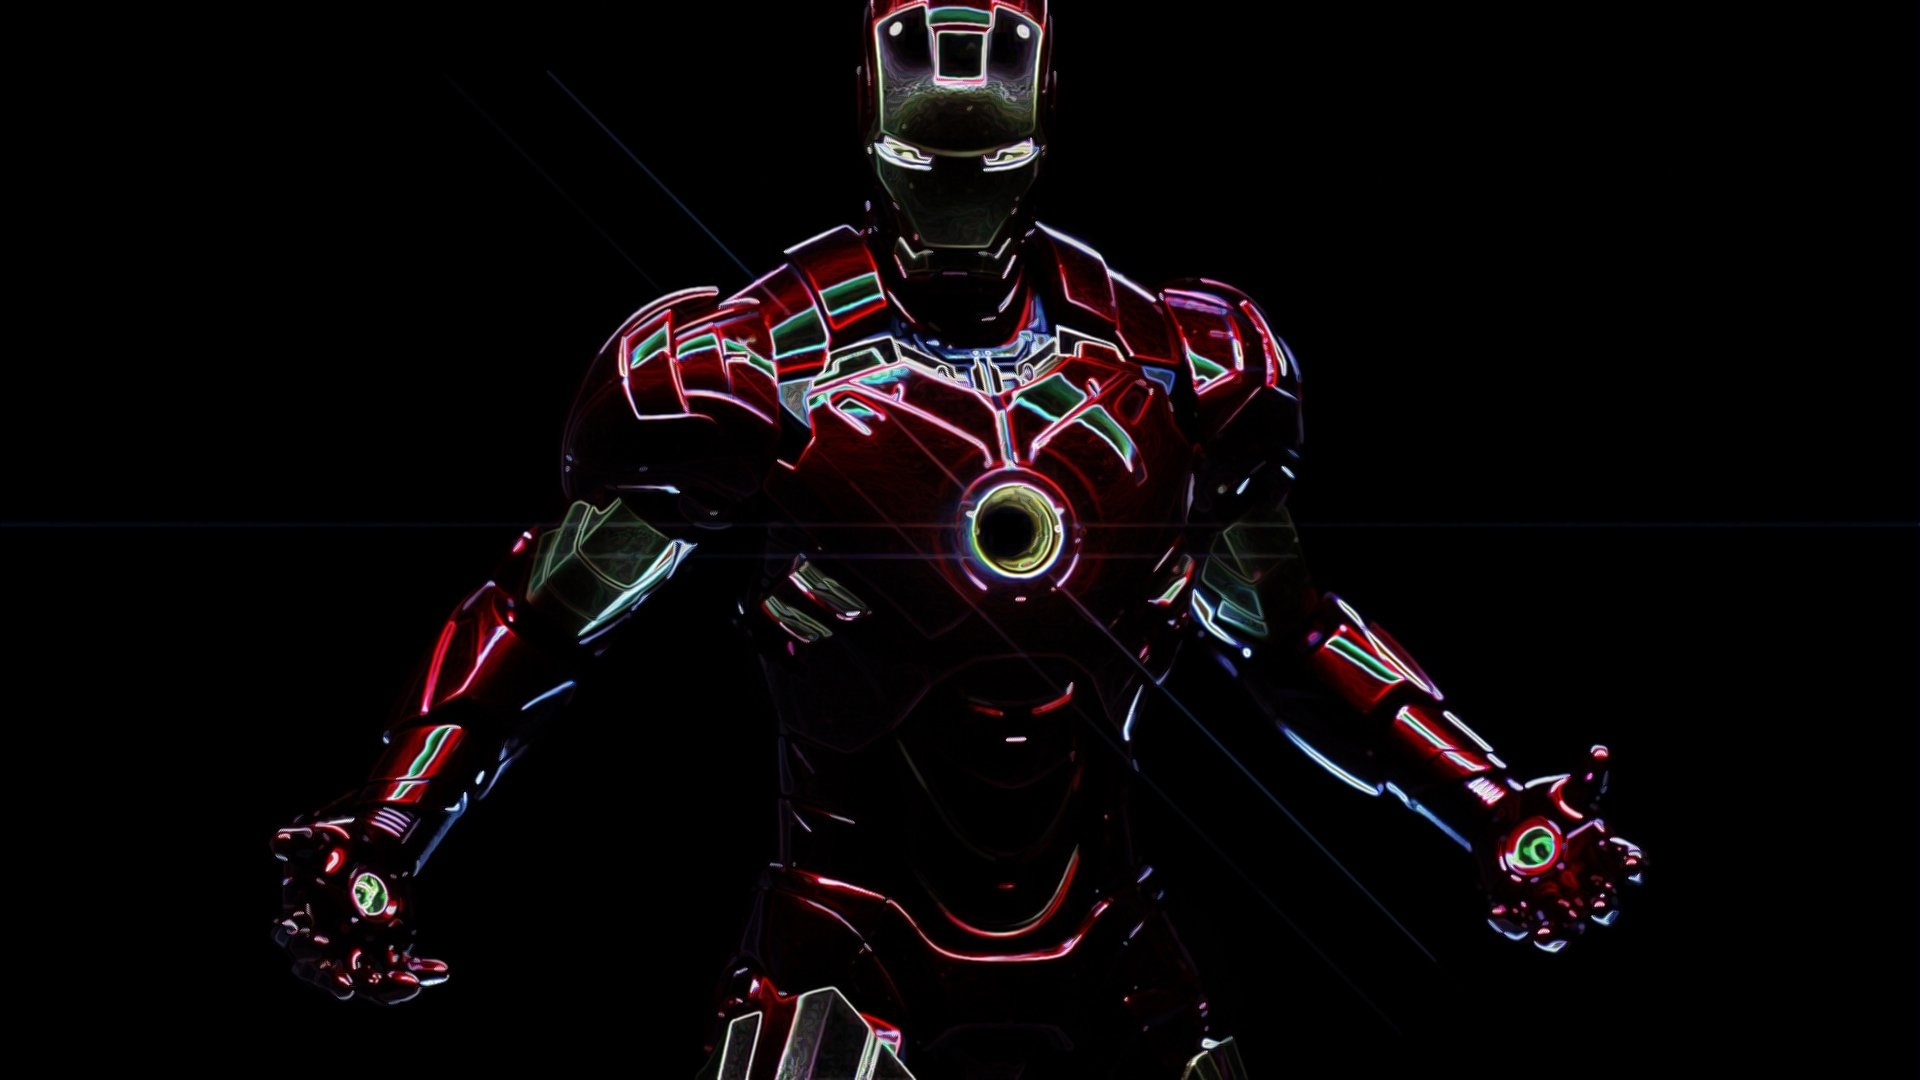 iron man full hd wallpaper and background image | 1920x1080 | id:523395